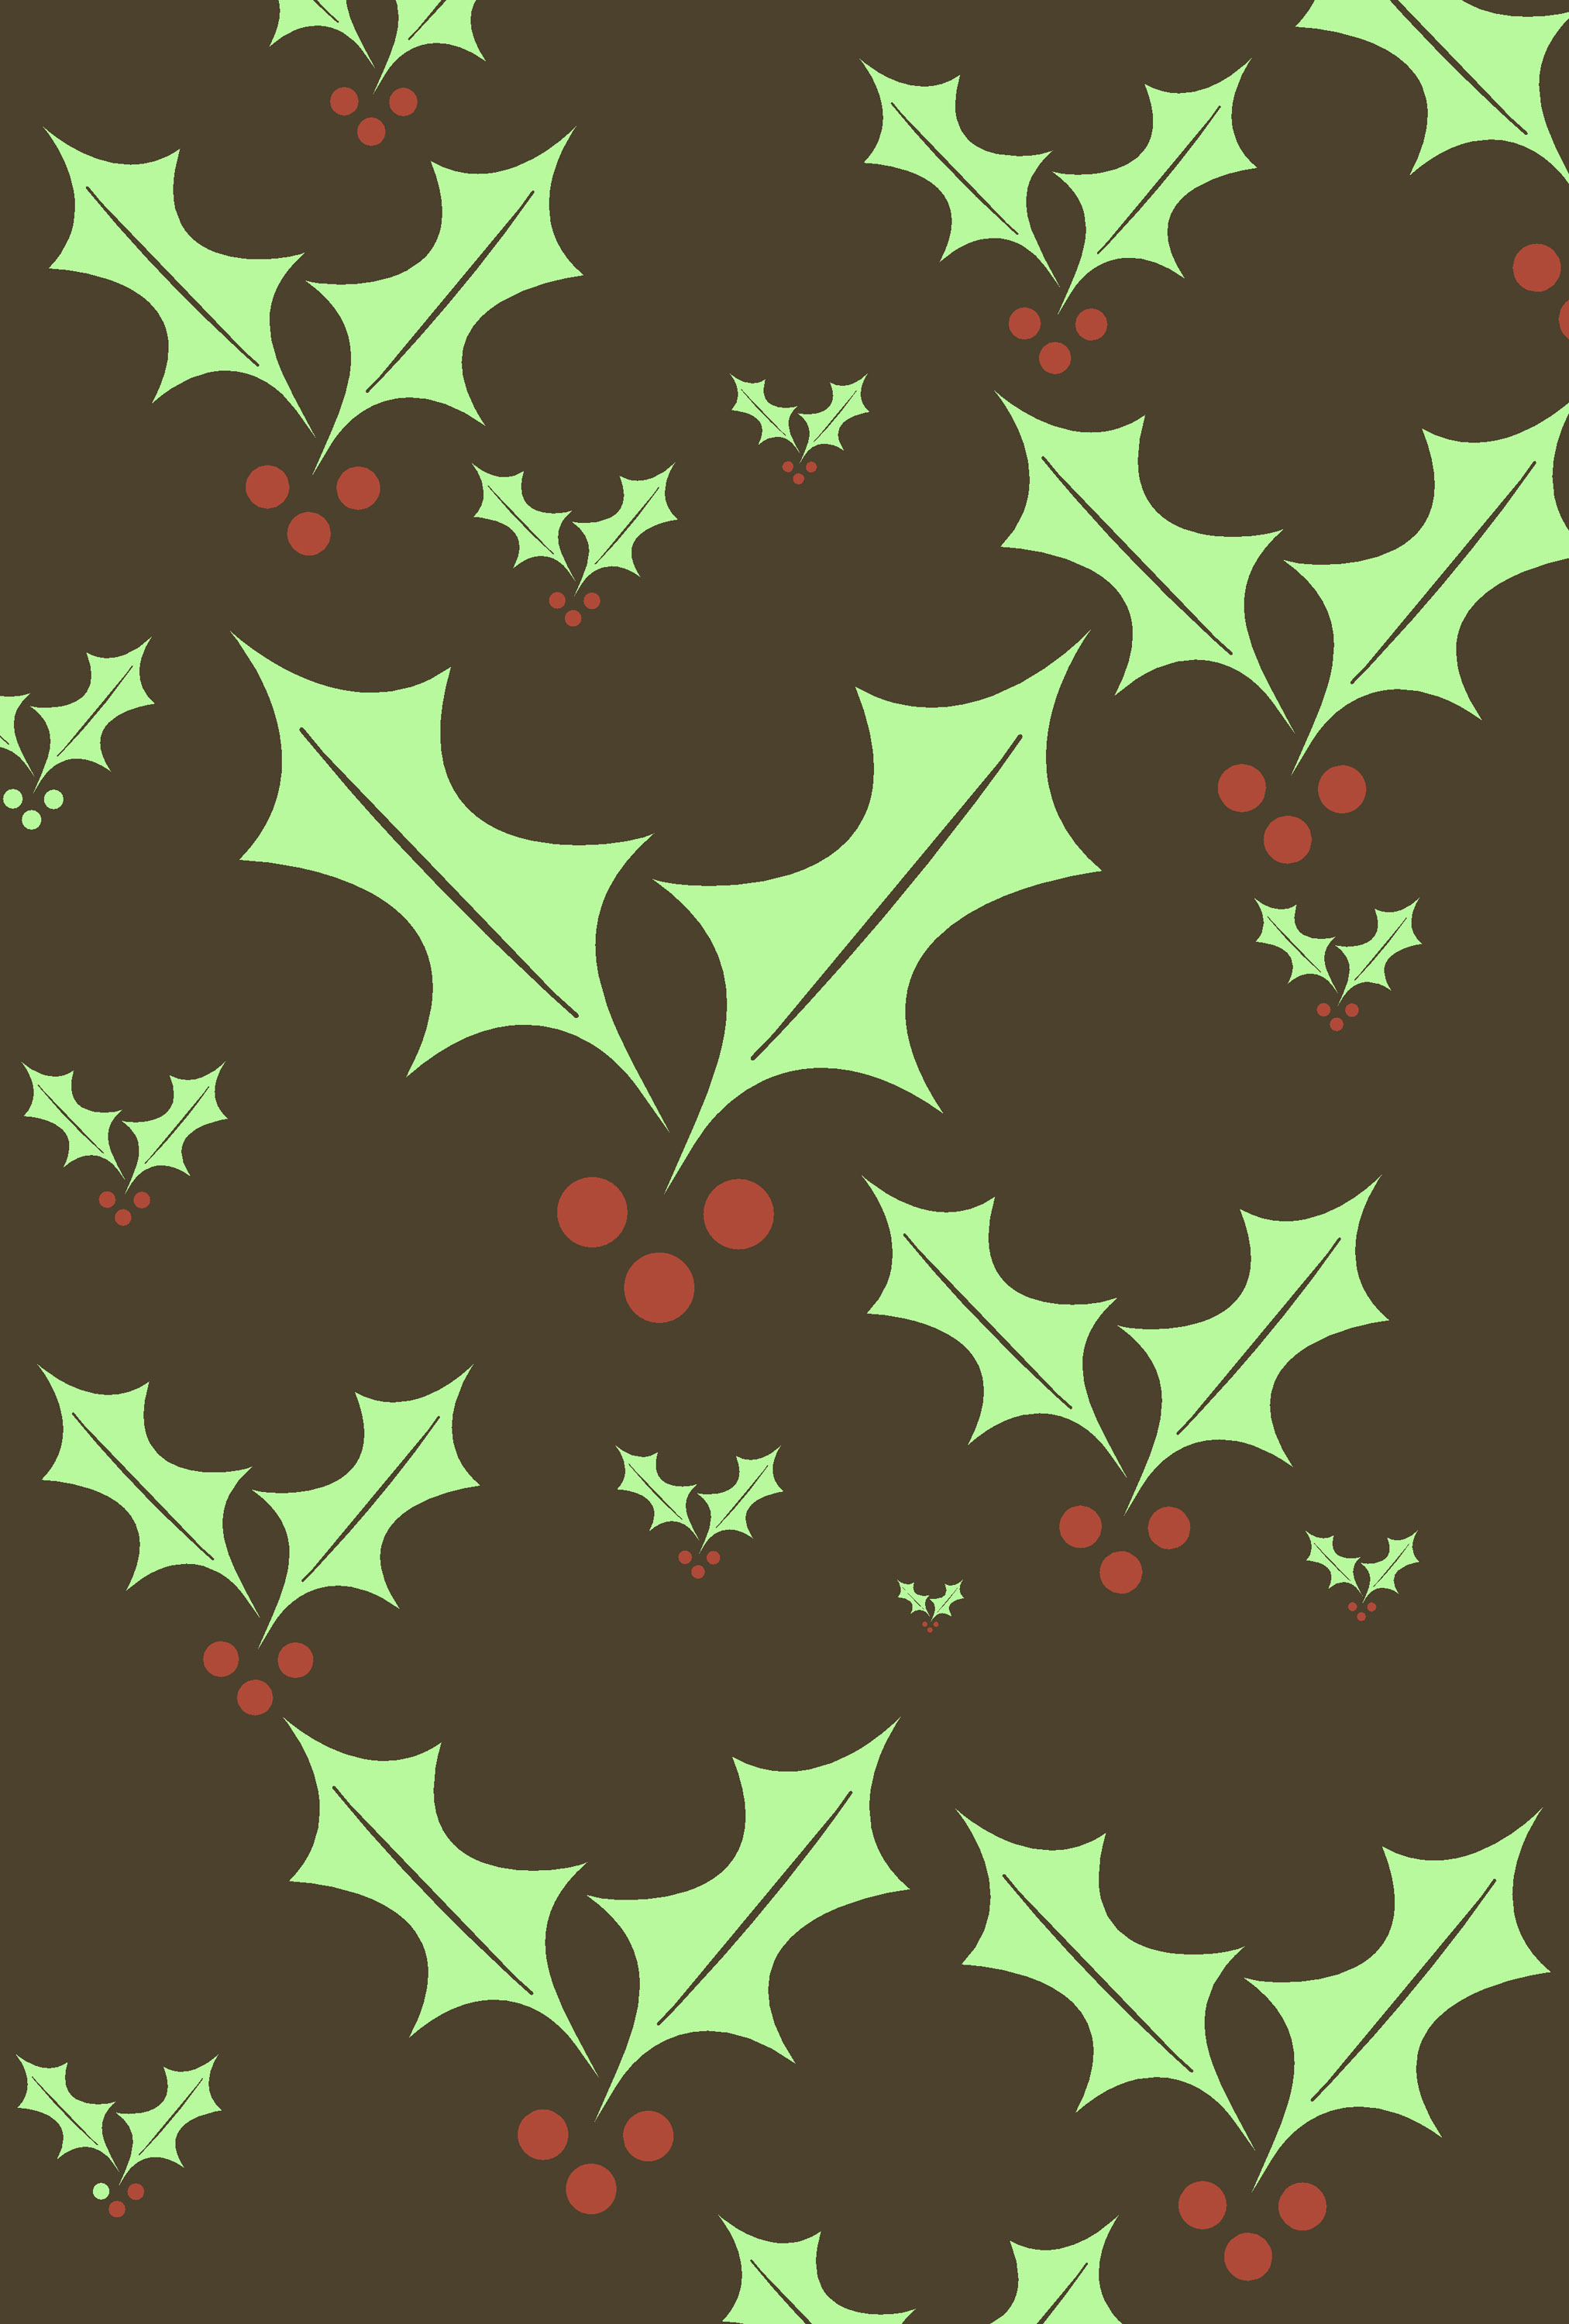 a pattern of varying sized holly symbols with red berries creates a useful christmas background